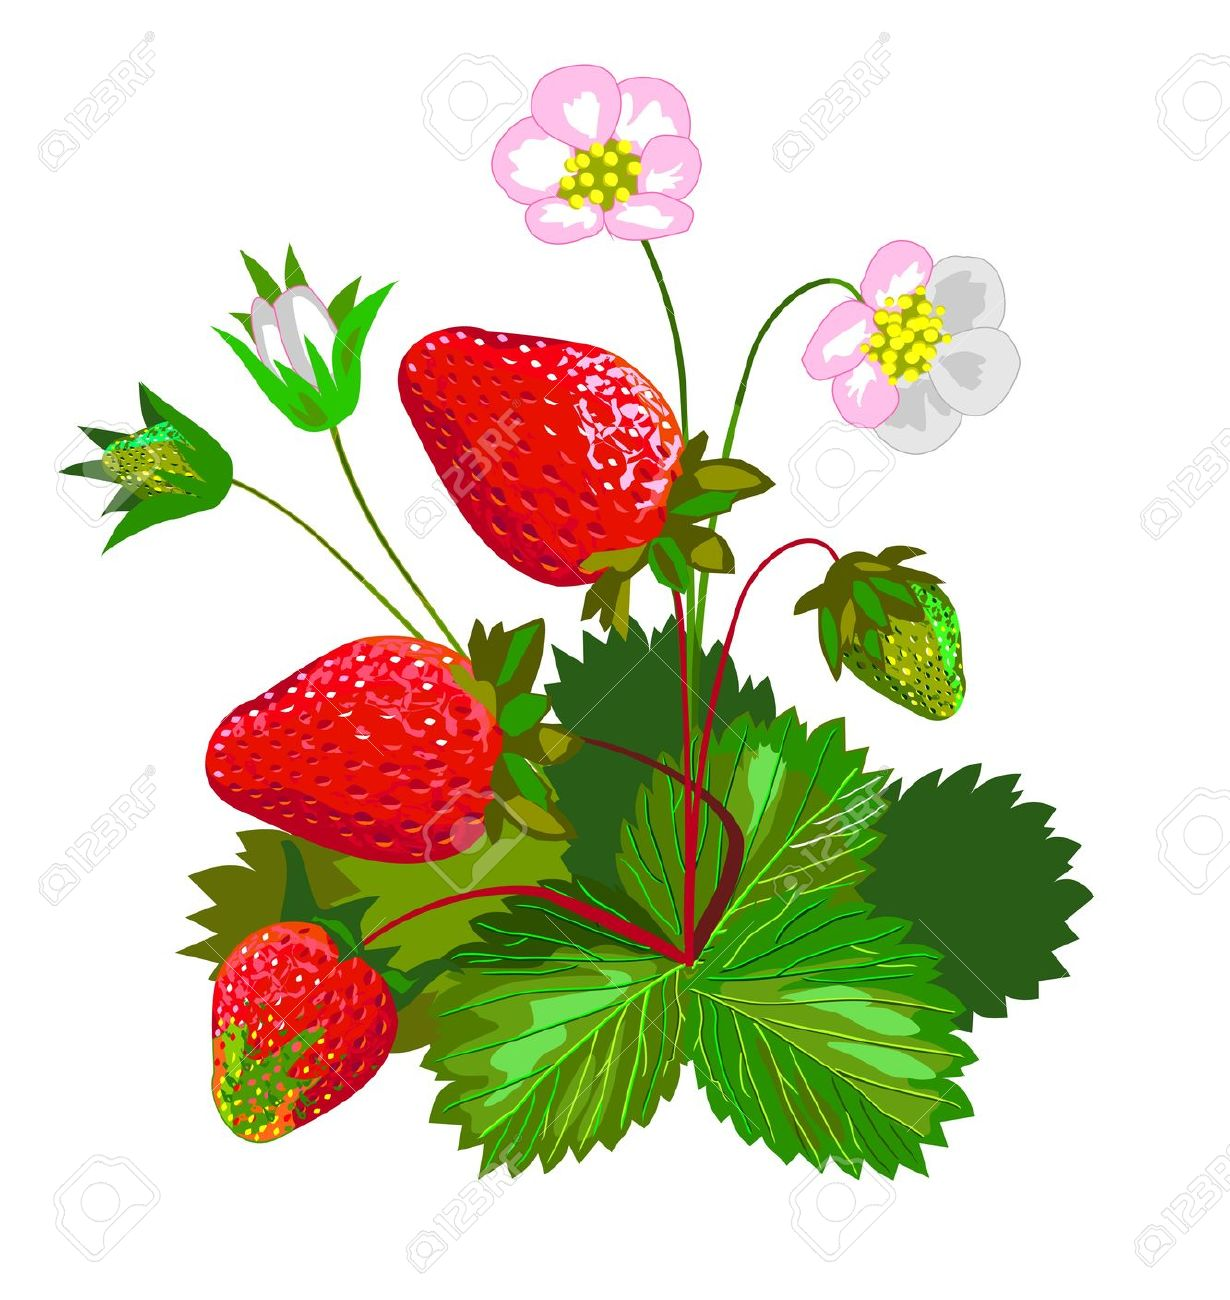 Strawberry With Flowers Royalty Free Cliparts, Vectors, And Stock.